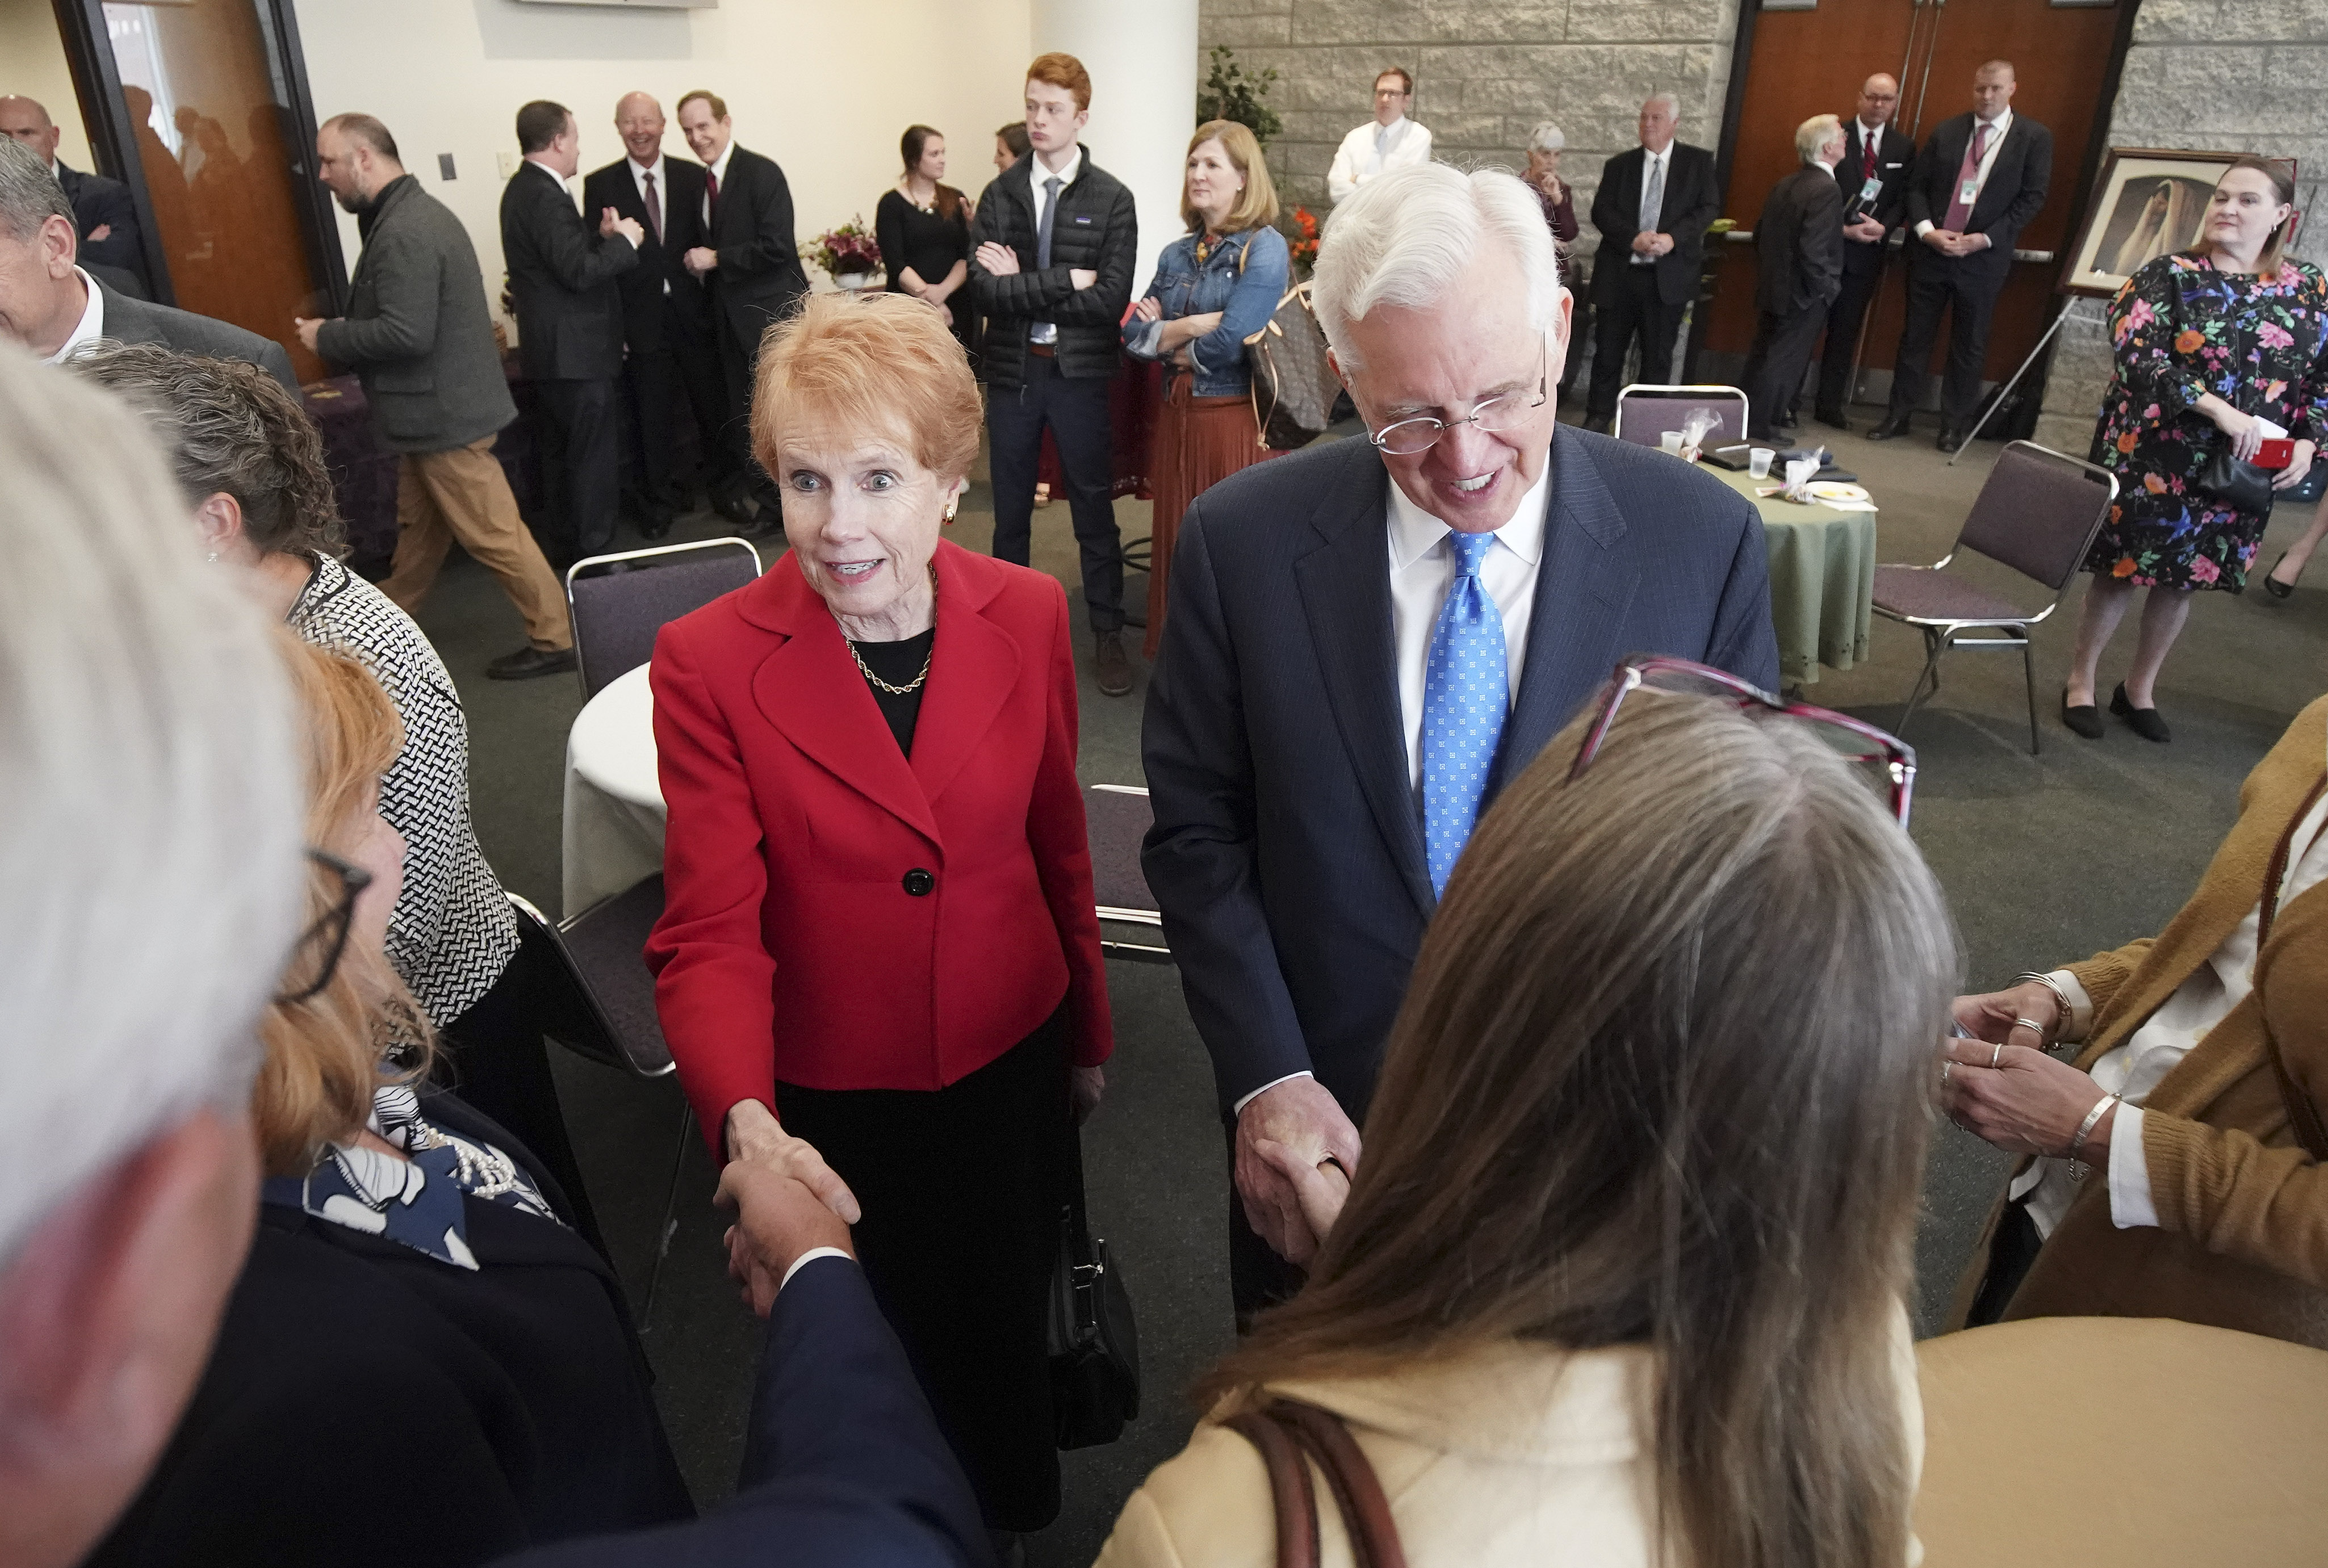 Elder D. Todd Christofferson, of The Church of Jesus Christ of Latter-day Saints' Quorum of the Twelve Apostles, holds hands with his wife, Sister Kathy Christofferson, as they meet with local dignitaries in Worcester, Massachusetts, on Sunday, Oct. 20, 2019.